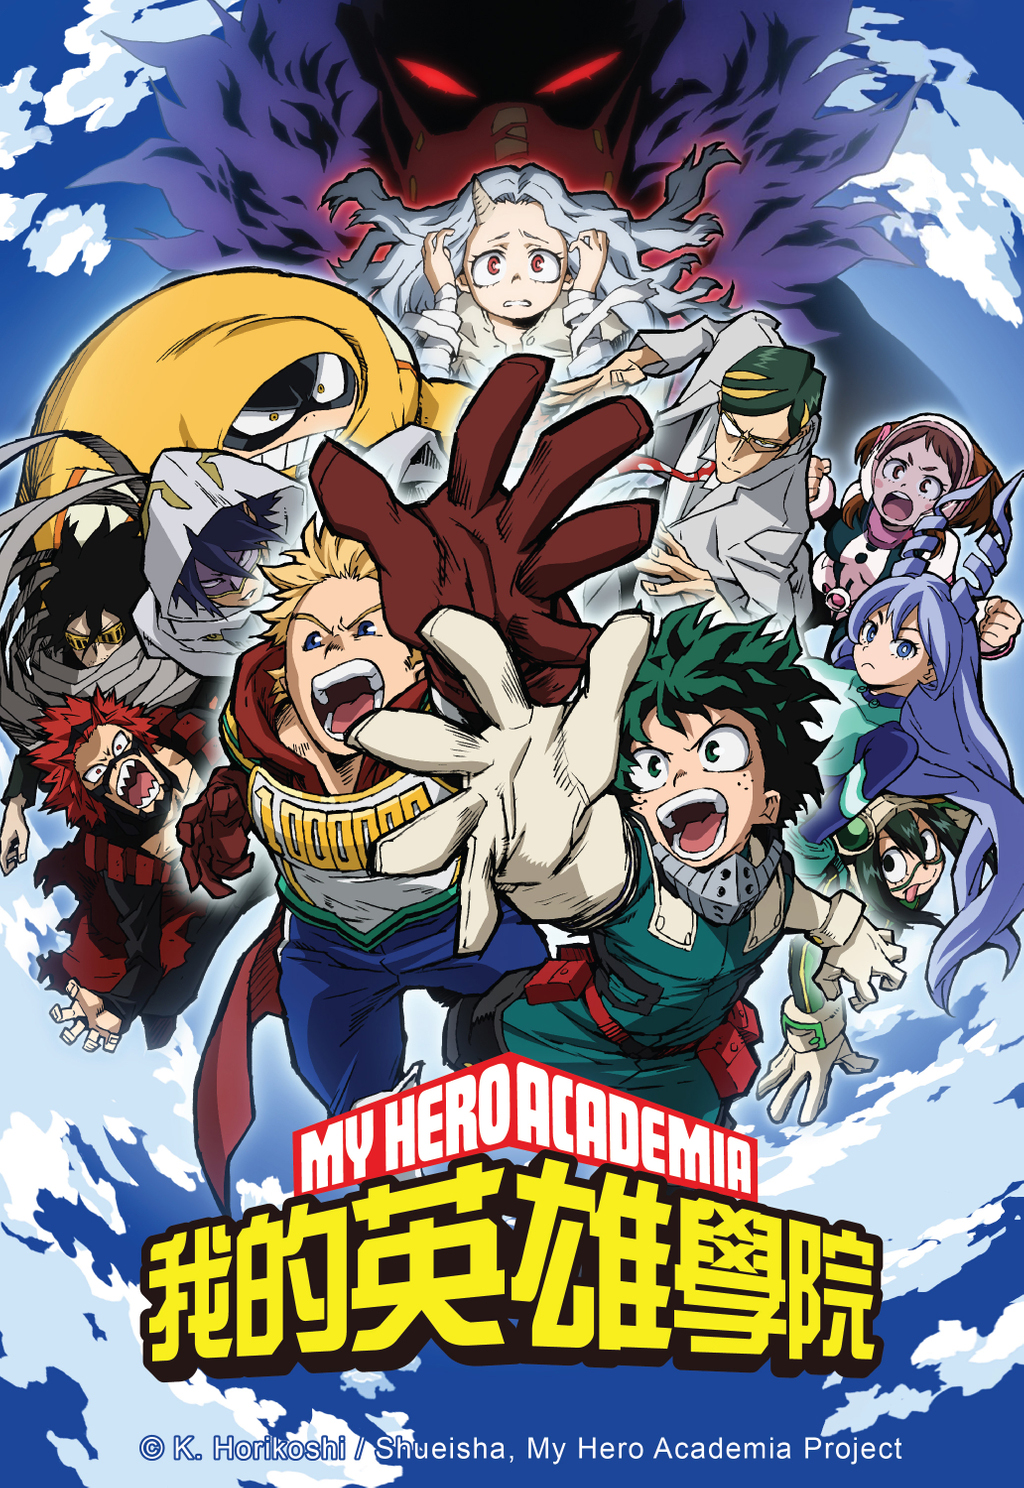 【MMSUB】★10月新番★[我的英雄学院 第四季 / Boku no Hero Academia 4th Season][04][WebRip 1080p AVC-8bit AAC][简繁外挂字幕]